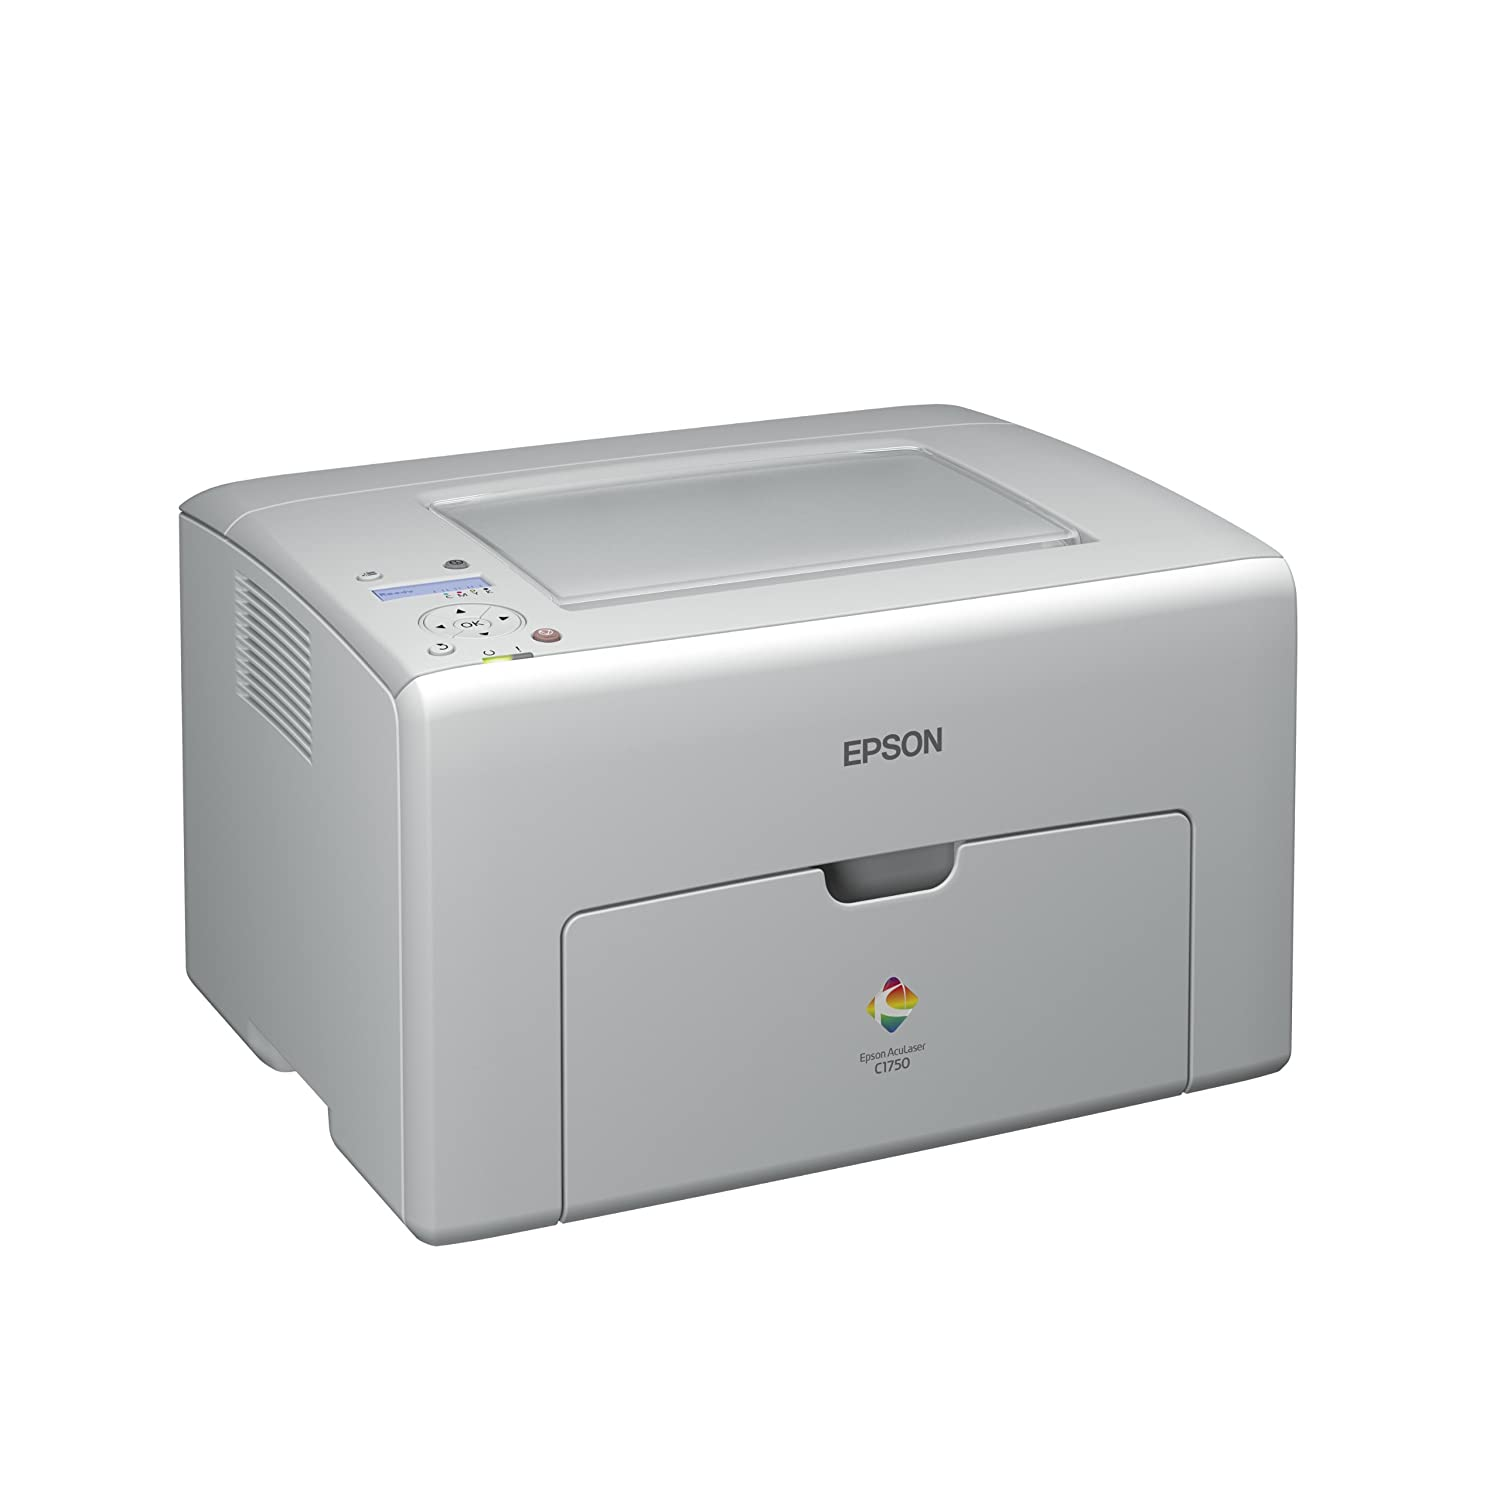 Epson Aculaser C 1750 N - Impresora LED Color: Amazon.es: Informática